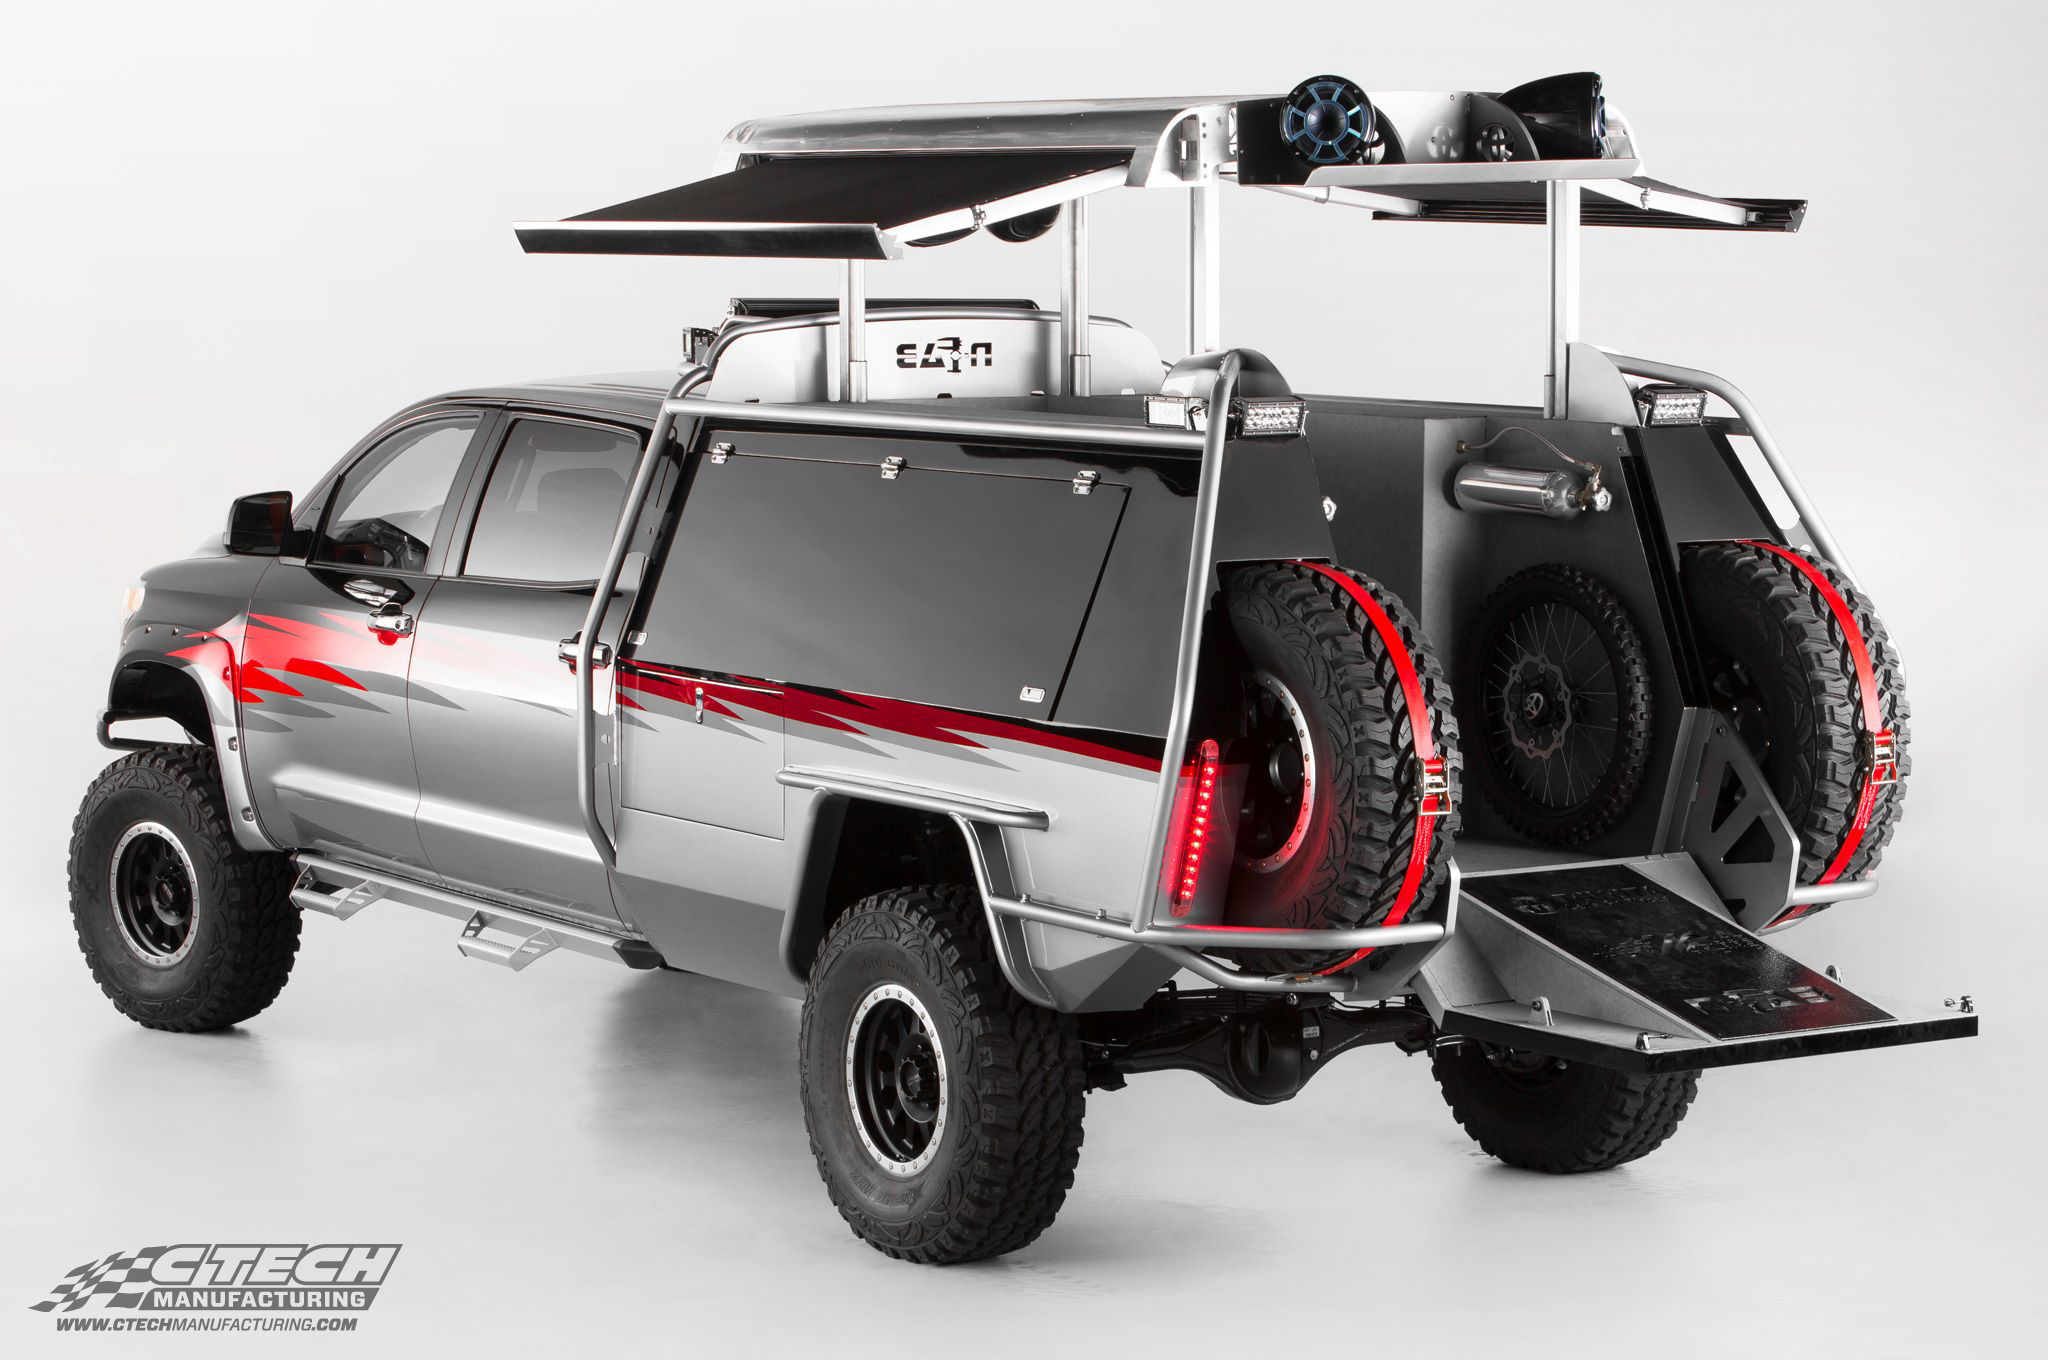 Toyota's recent Dream Build: A Toyota Tundra built specifically for off-road motocross racers. This truck is equipped with CTech Tool Drawers because they're built for the rigors of offroad travel!